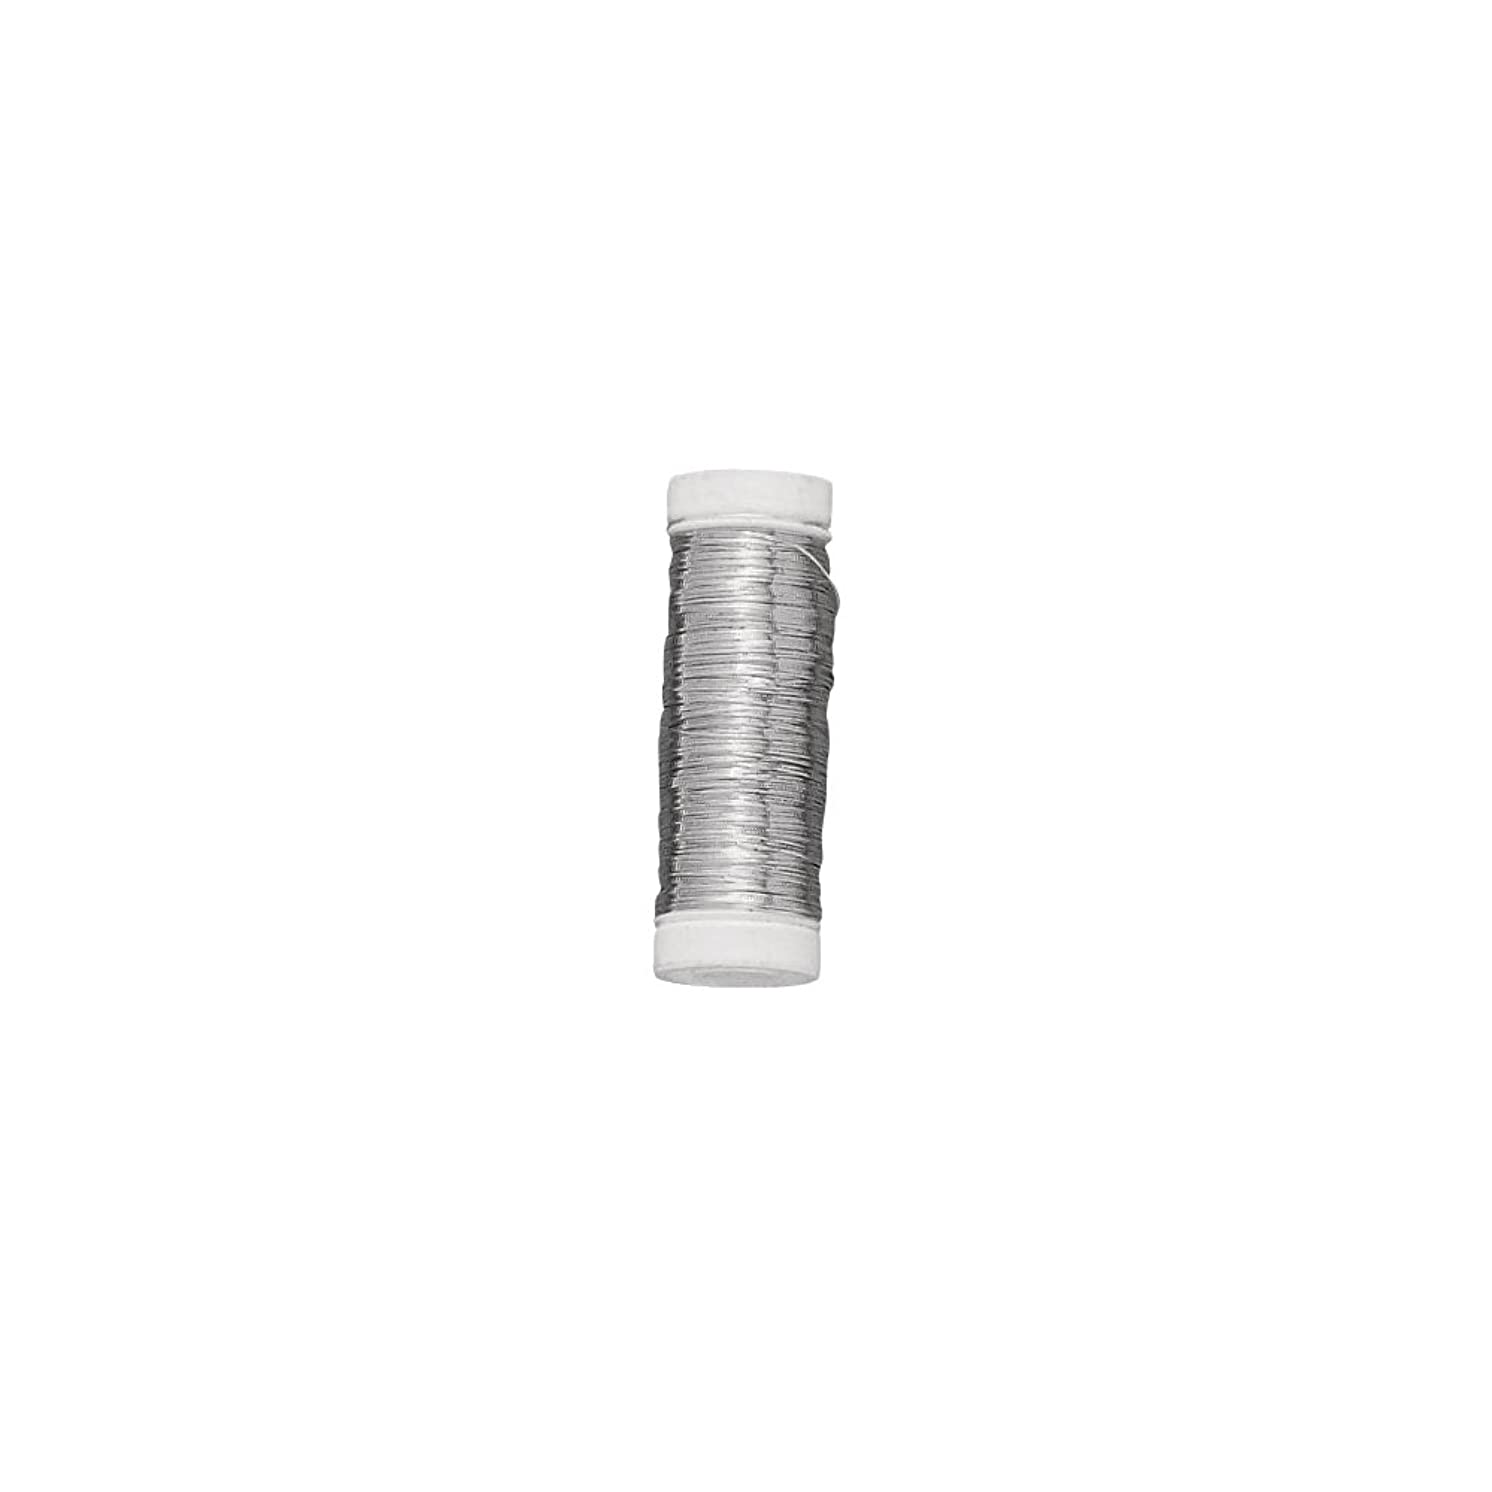 Rayher 2425800 Silver Wire with Copper Core 0.25 mm Diameter on Reel